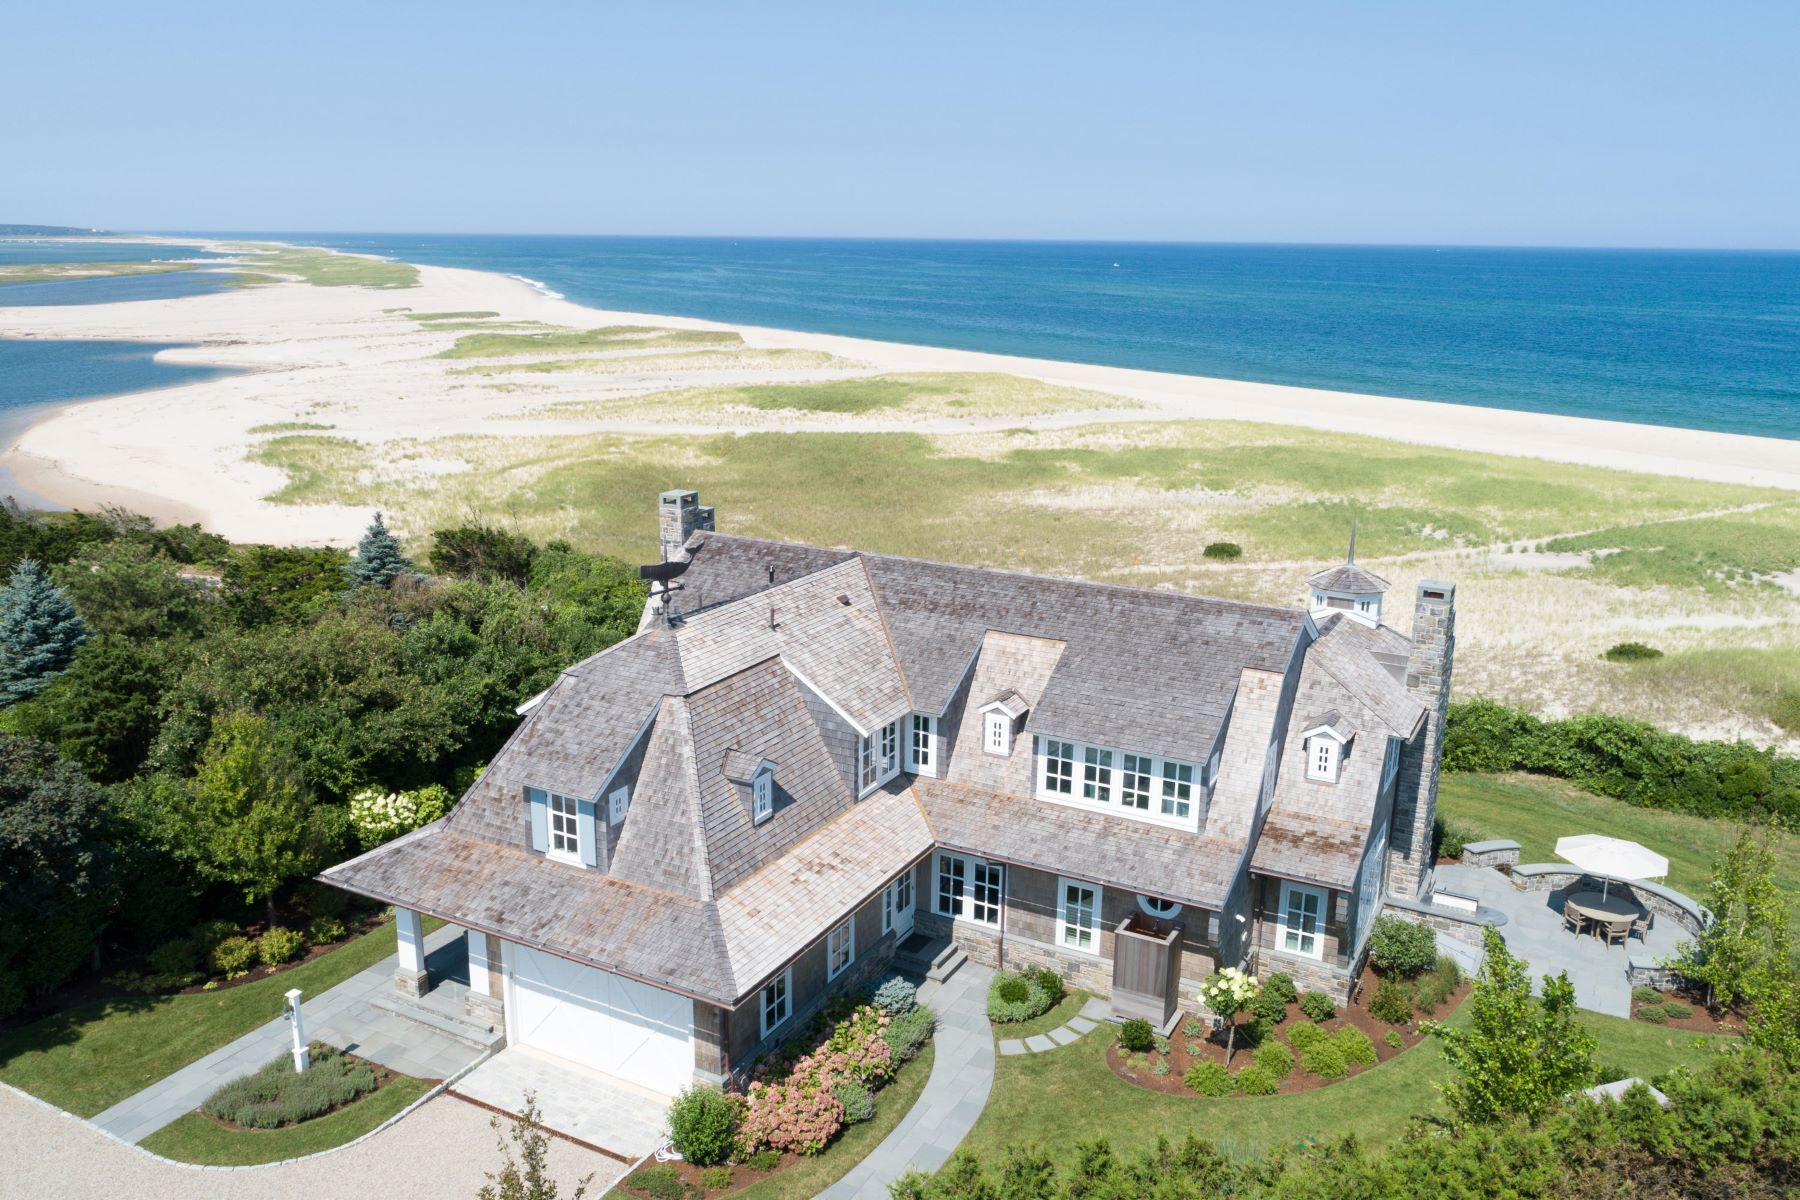 Single Family Homes for Sale at 51 Nauset Road, Orleans, MA 51 Nauset Road Orleans, Massachusetts 02653 United States